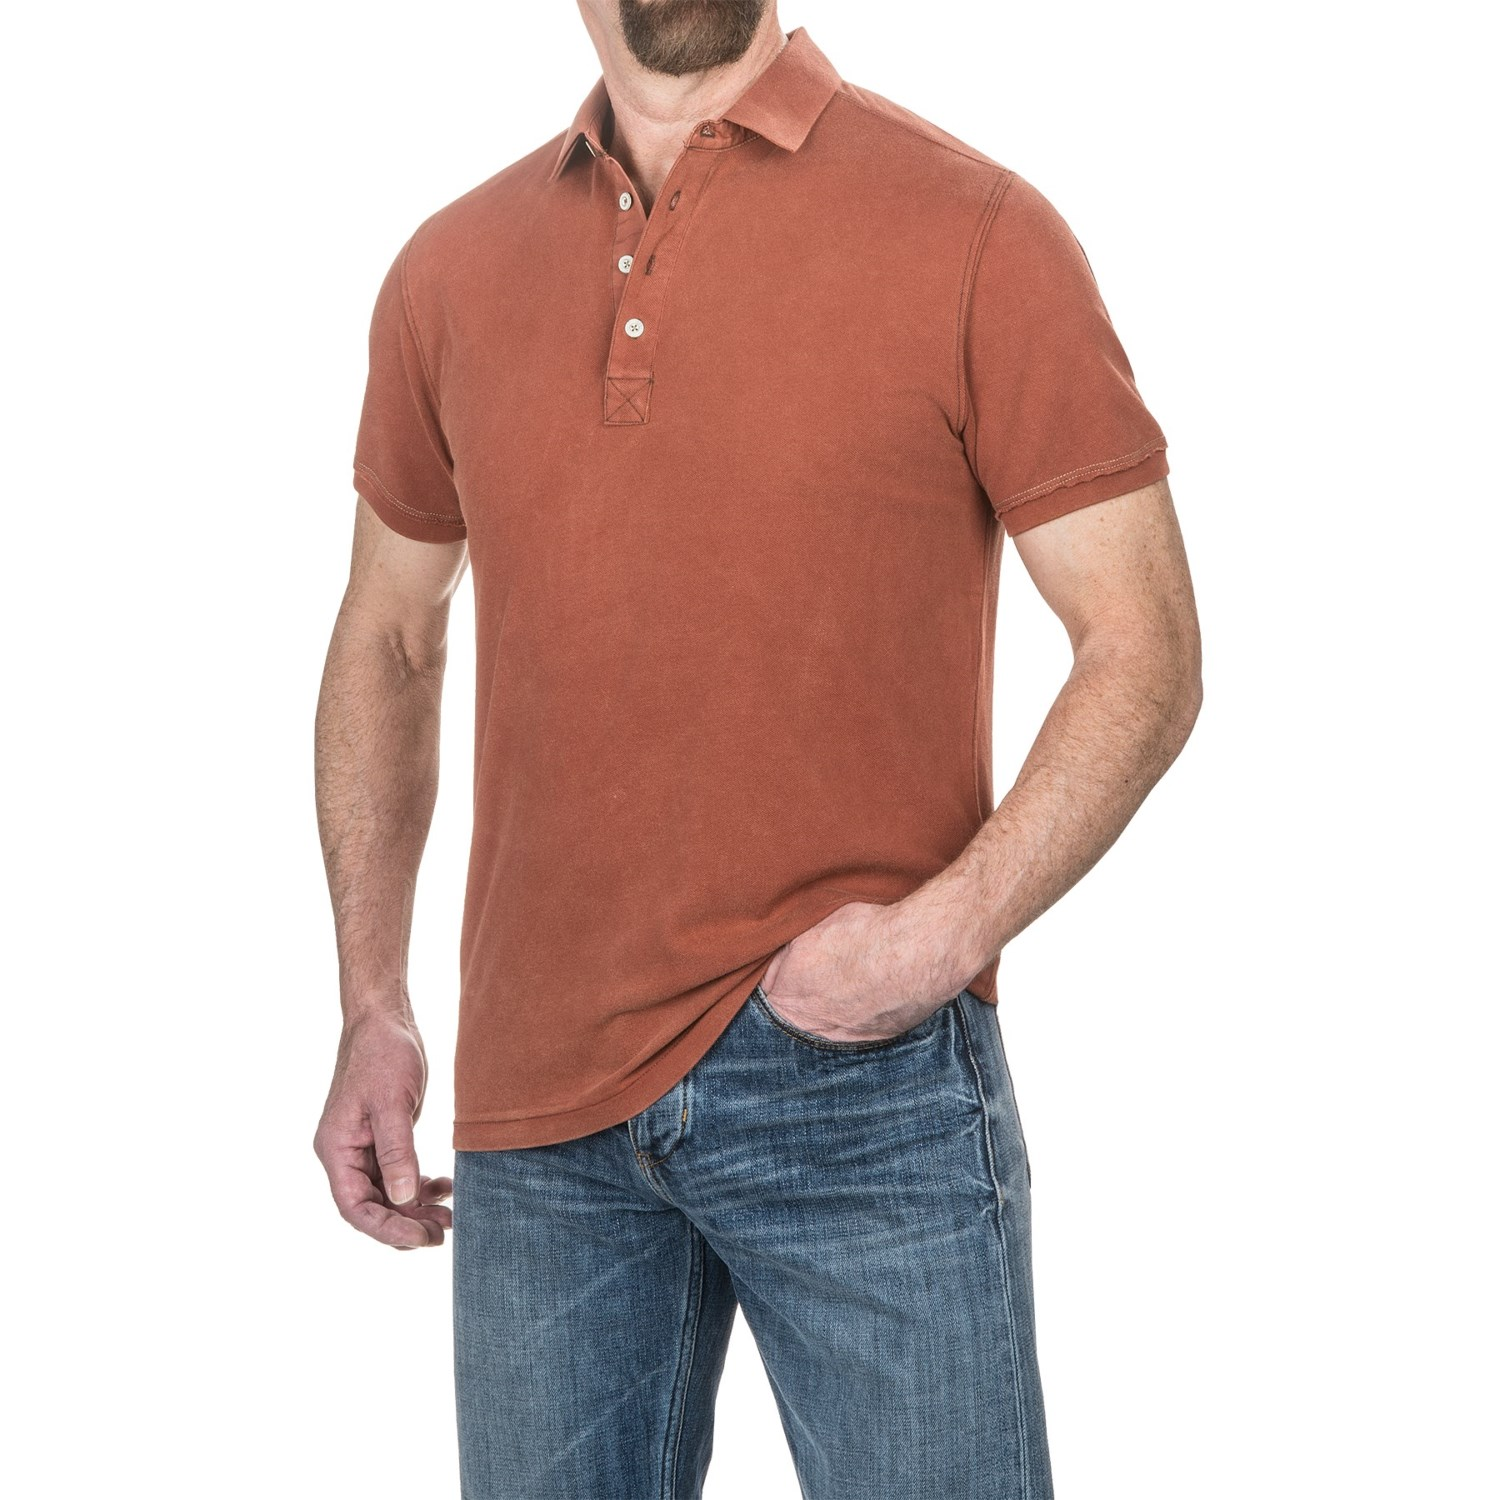 Jeremiah cotton polo shirt for men save 84 for Cotton polo shirts for men